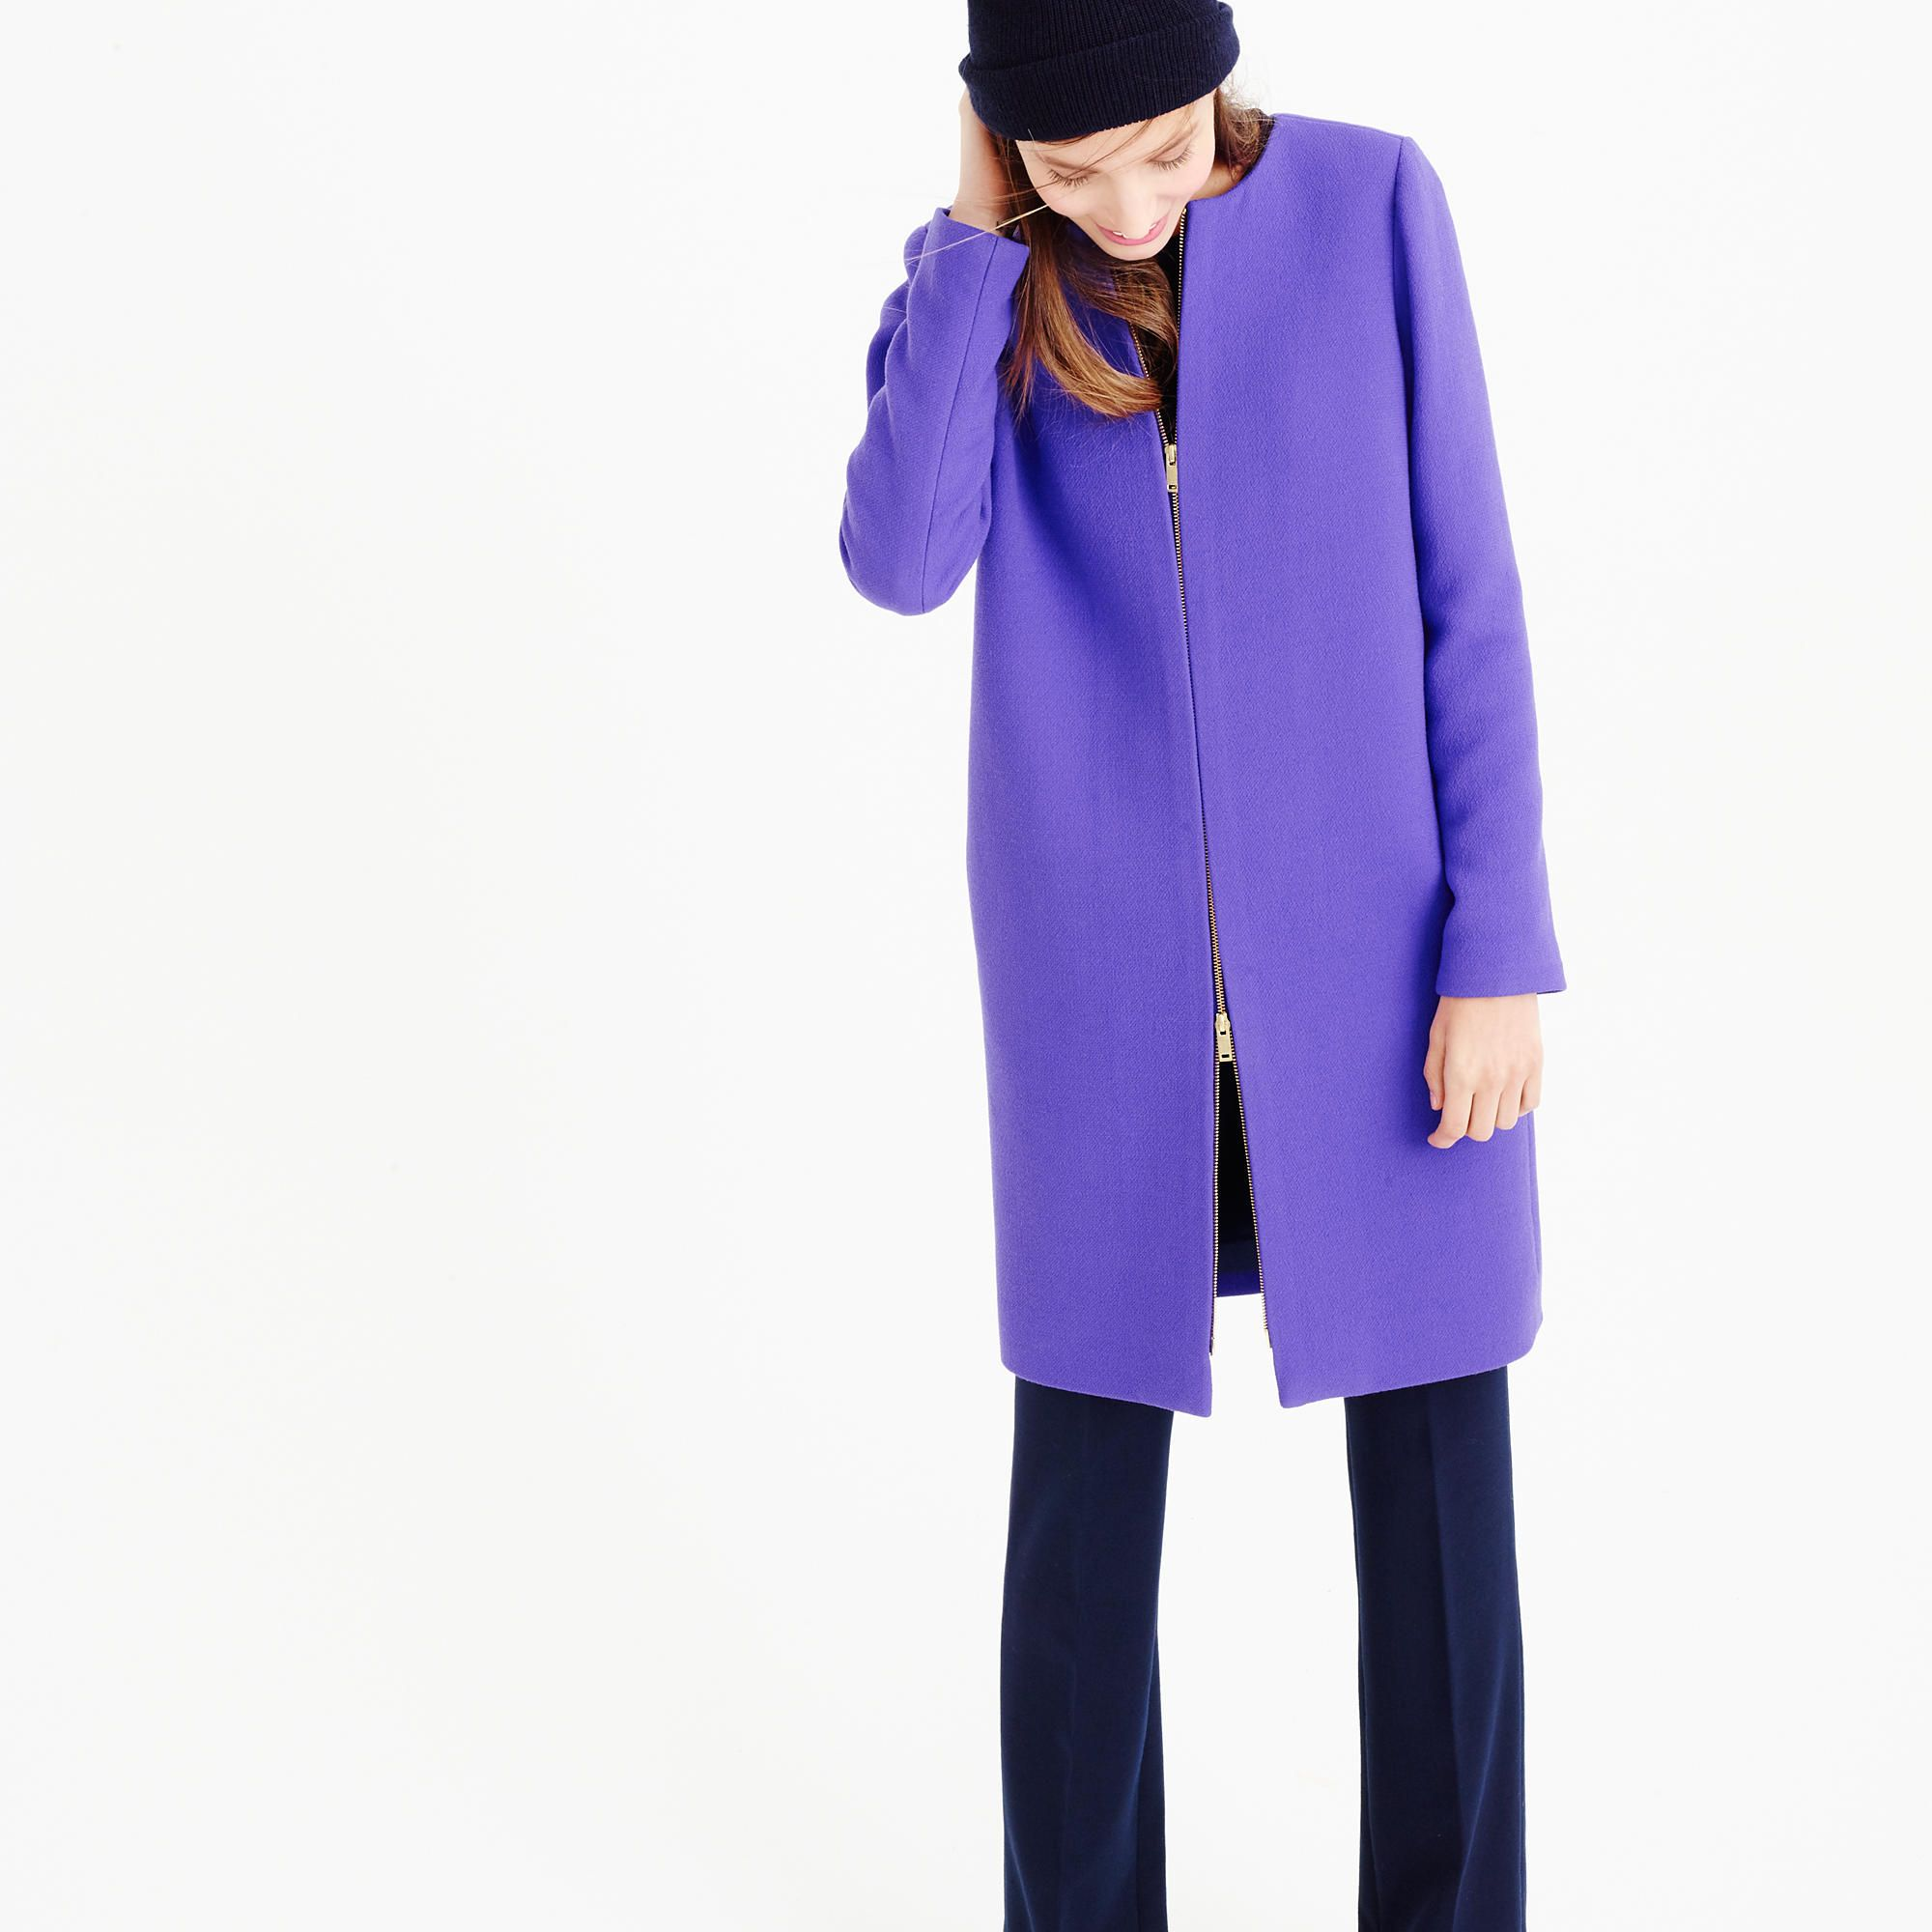 This radiant purple brings life to our winter wardrobe